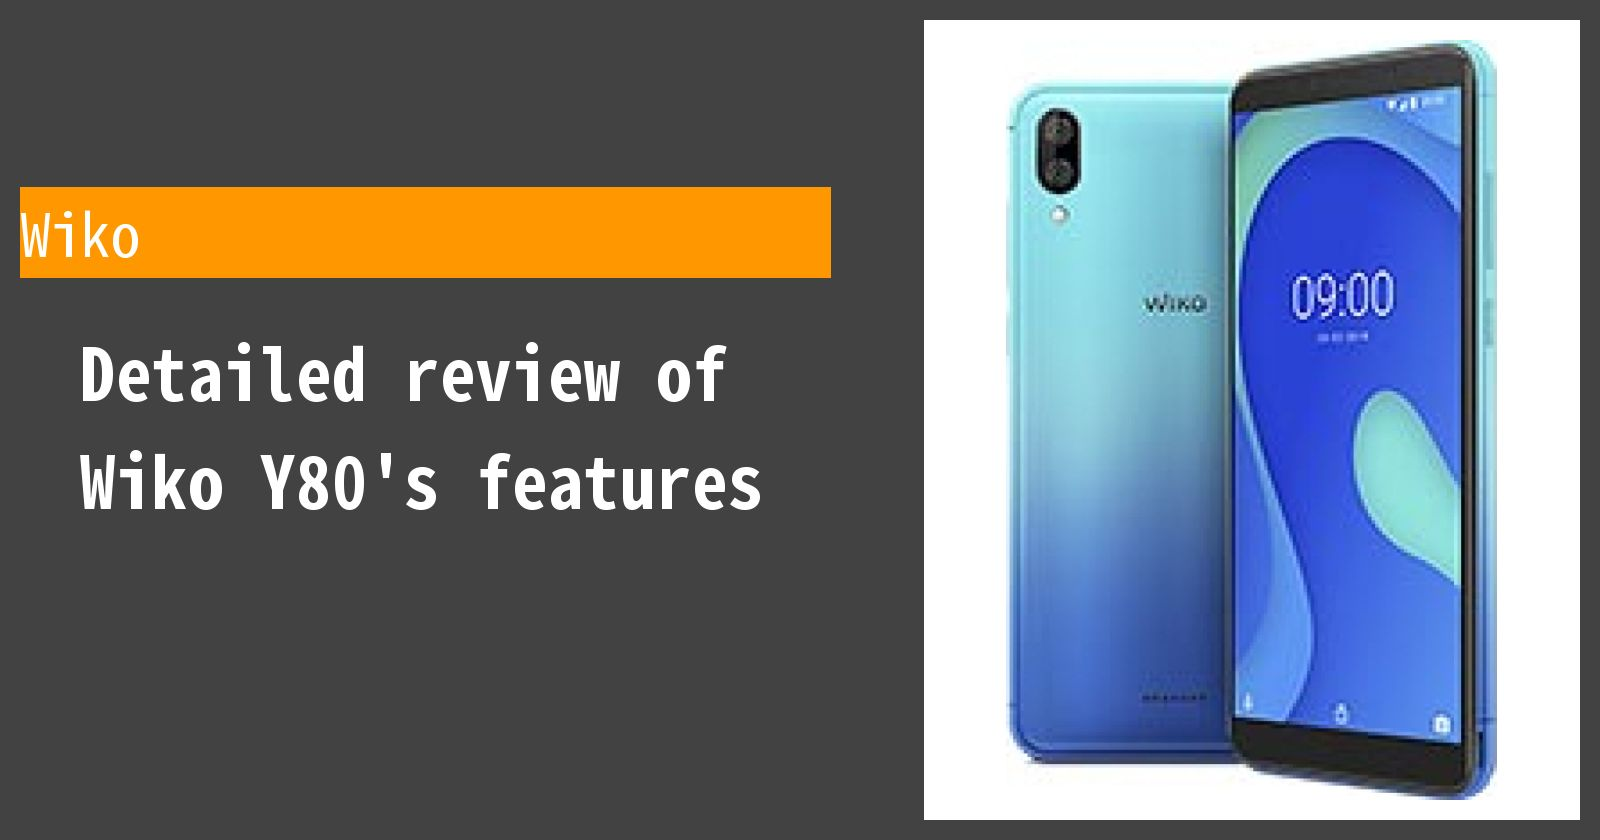 Detailed review of Wiko Y80's features